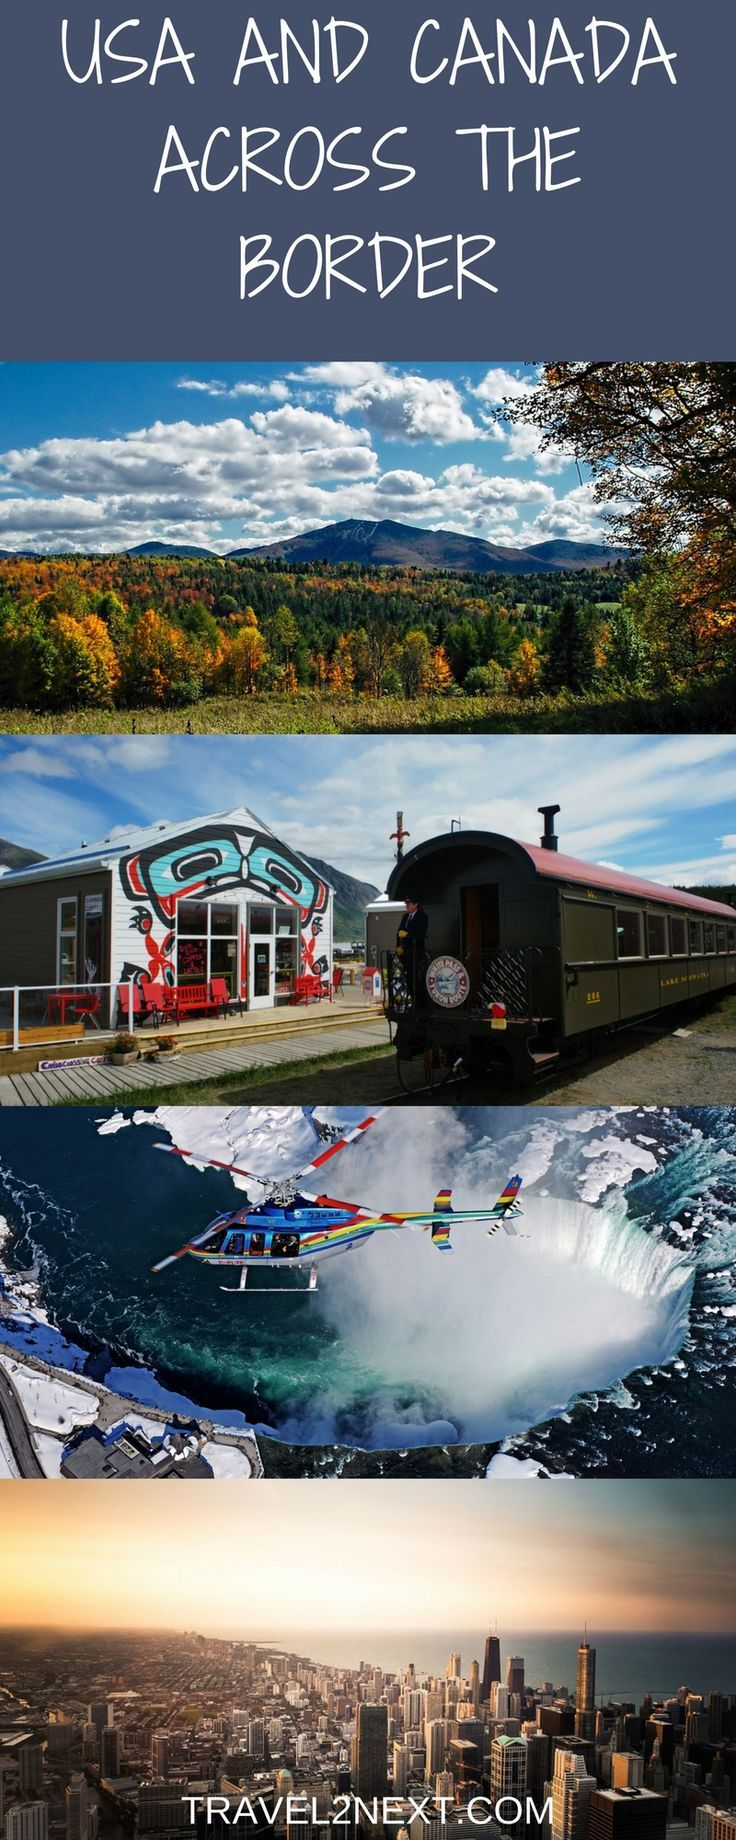 USA and Canada Destination Pairing – 6 Top Spots. Planning a trip to the USA? Why not consider destination pairing, where you visit the United States of America but hop across the border to appreciate a Canadian take on a similar – or contrasting – destin